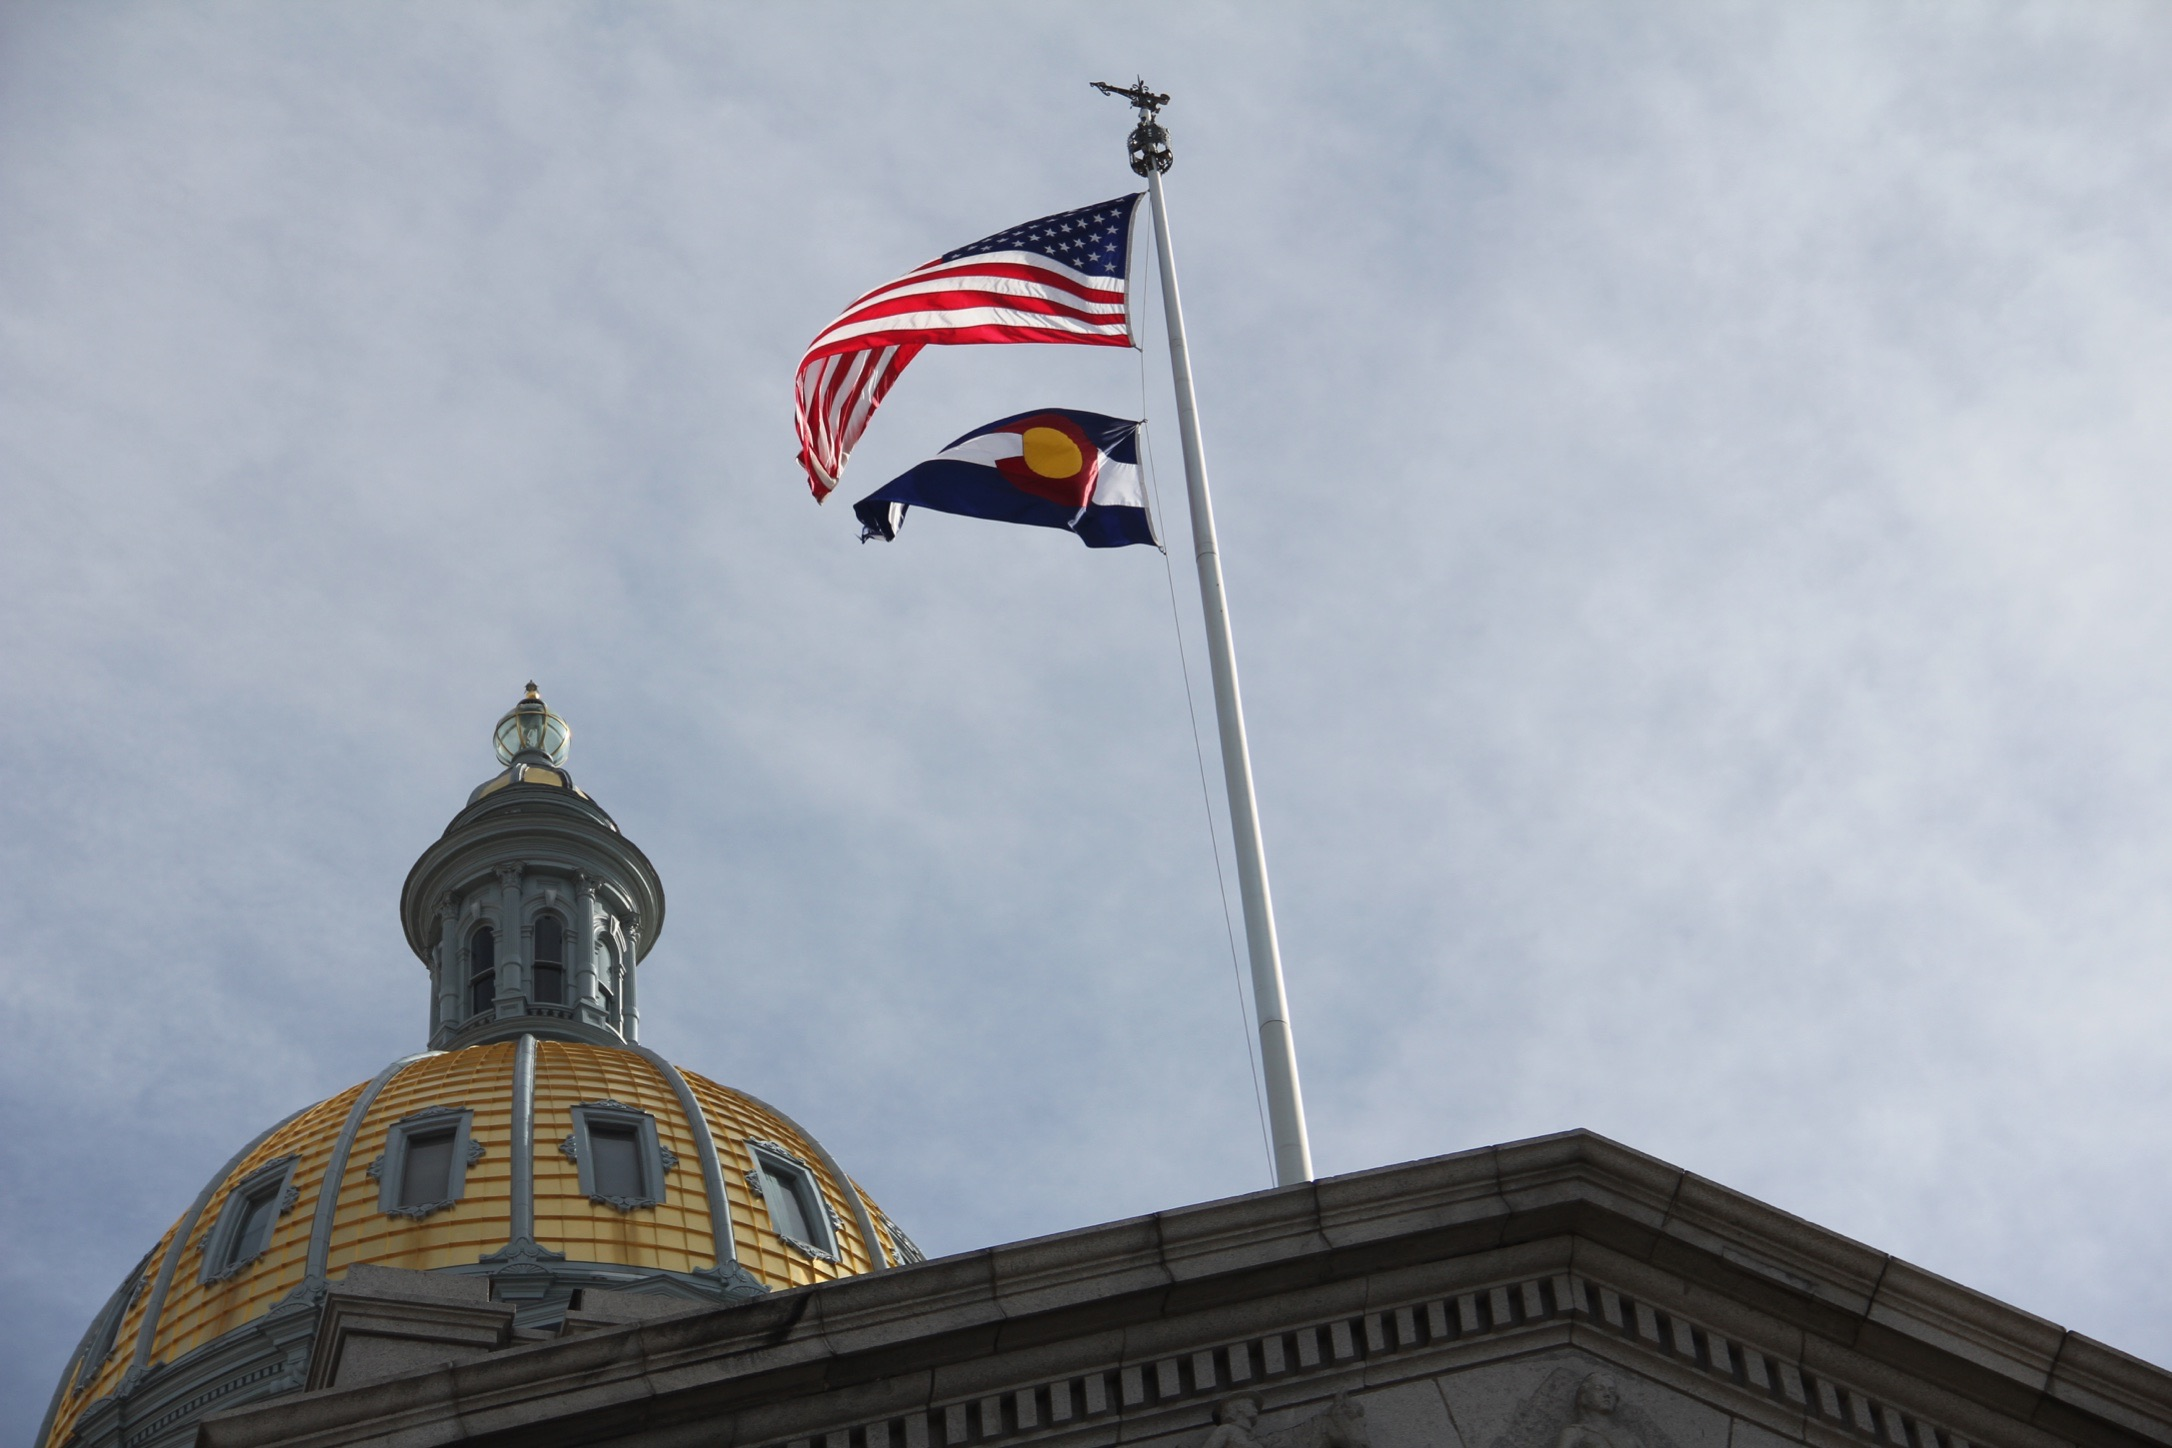 The U.S. flag and Colorado state flag at the Colorado State Capitol on Monday, Feb. 4, in Denver.